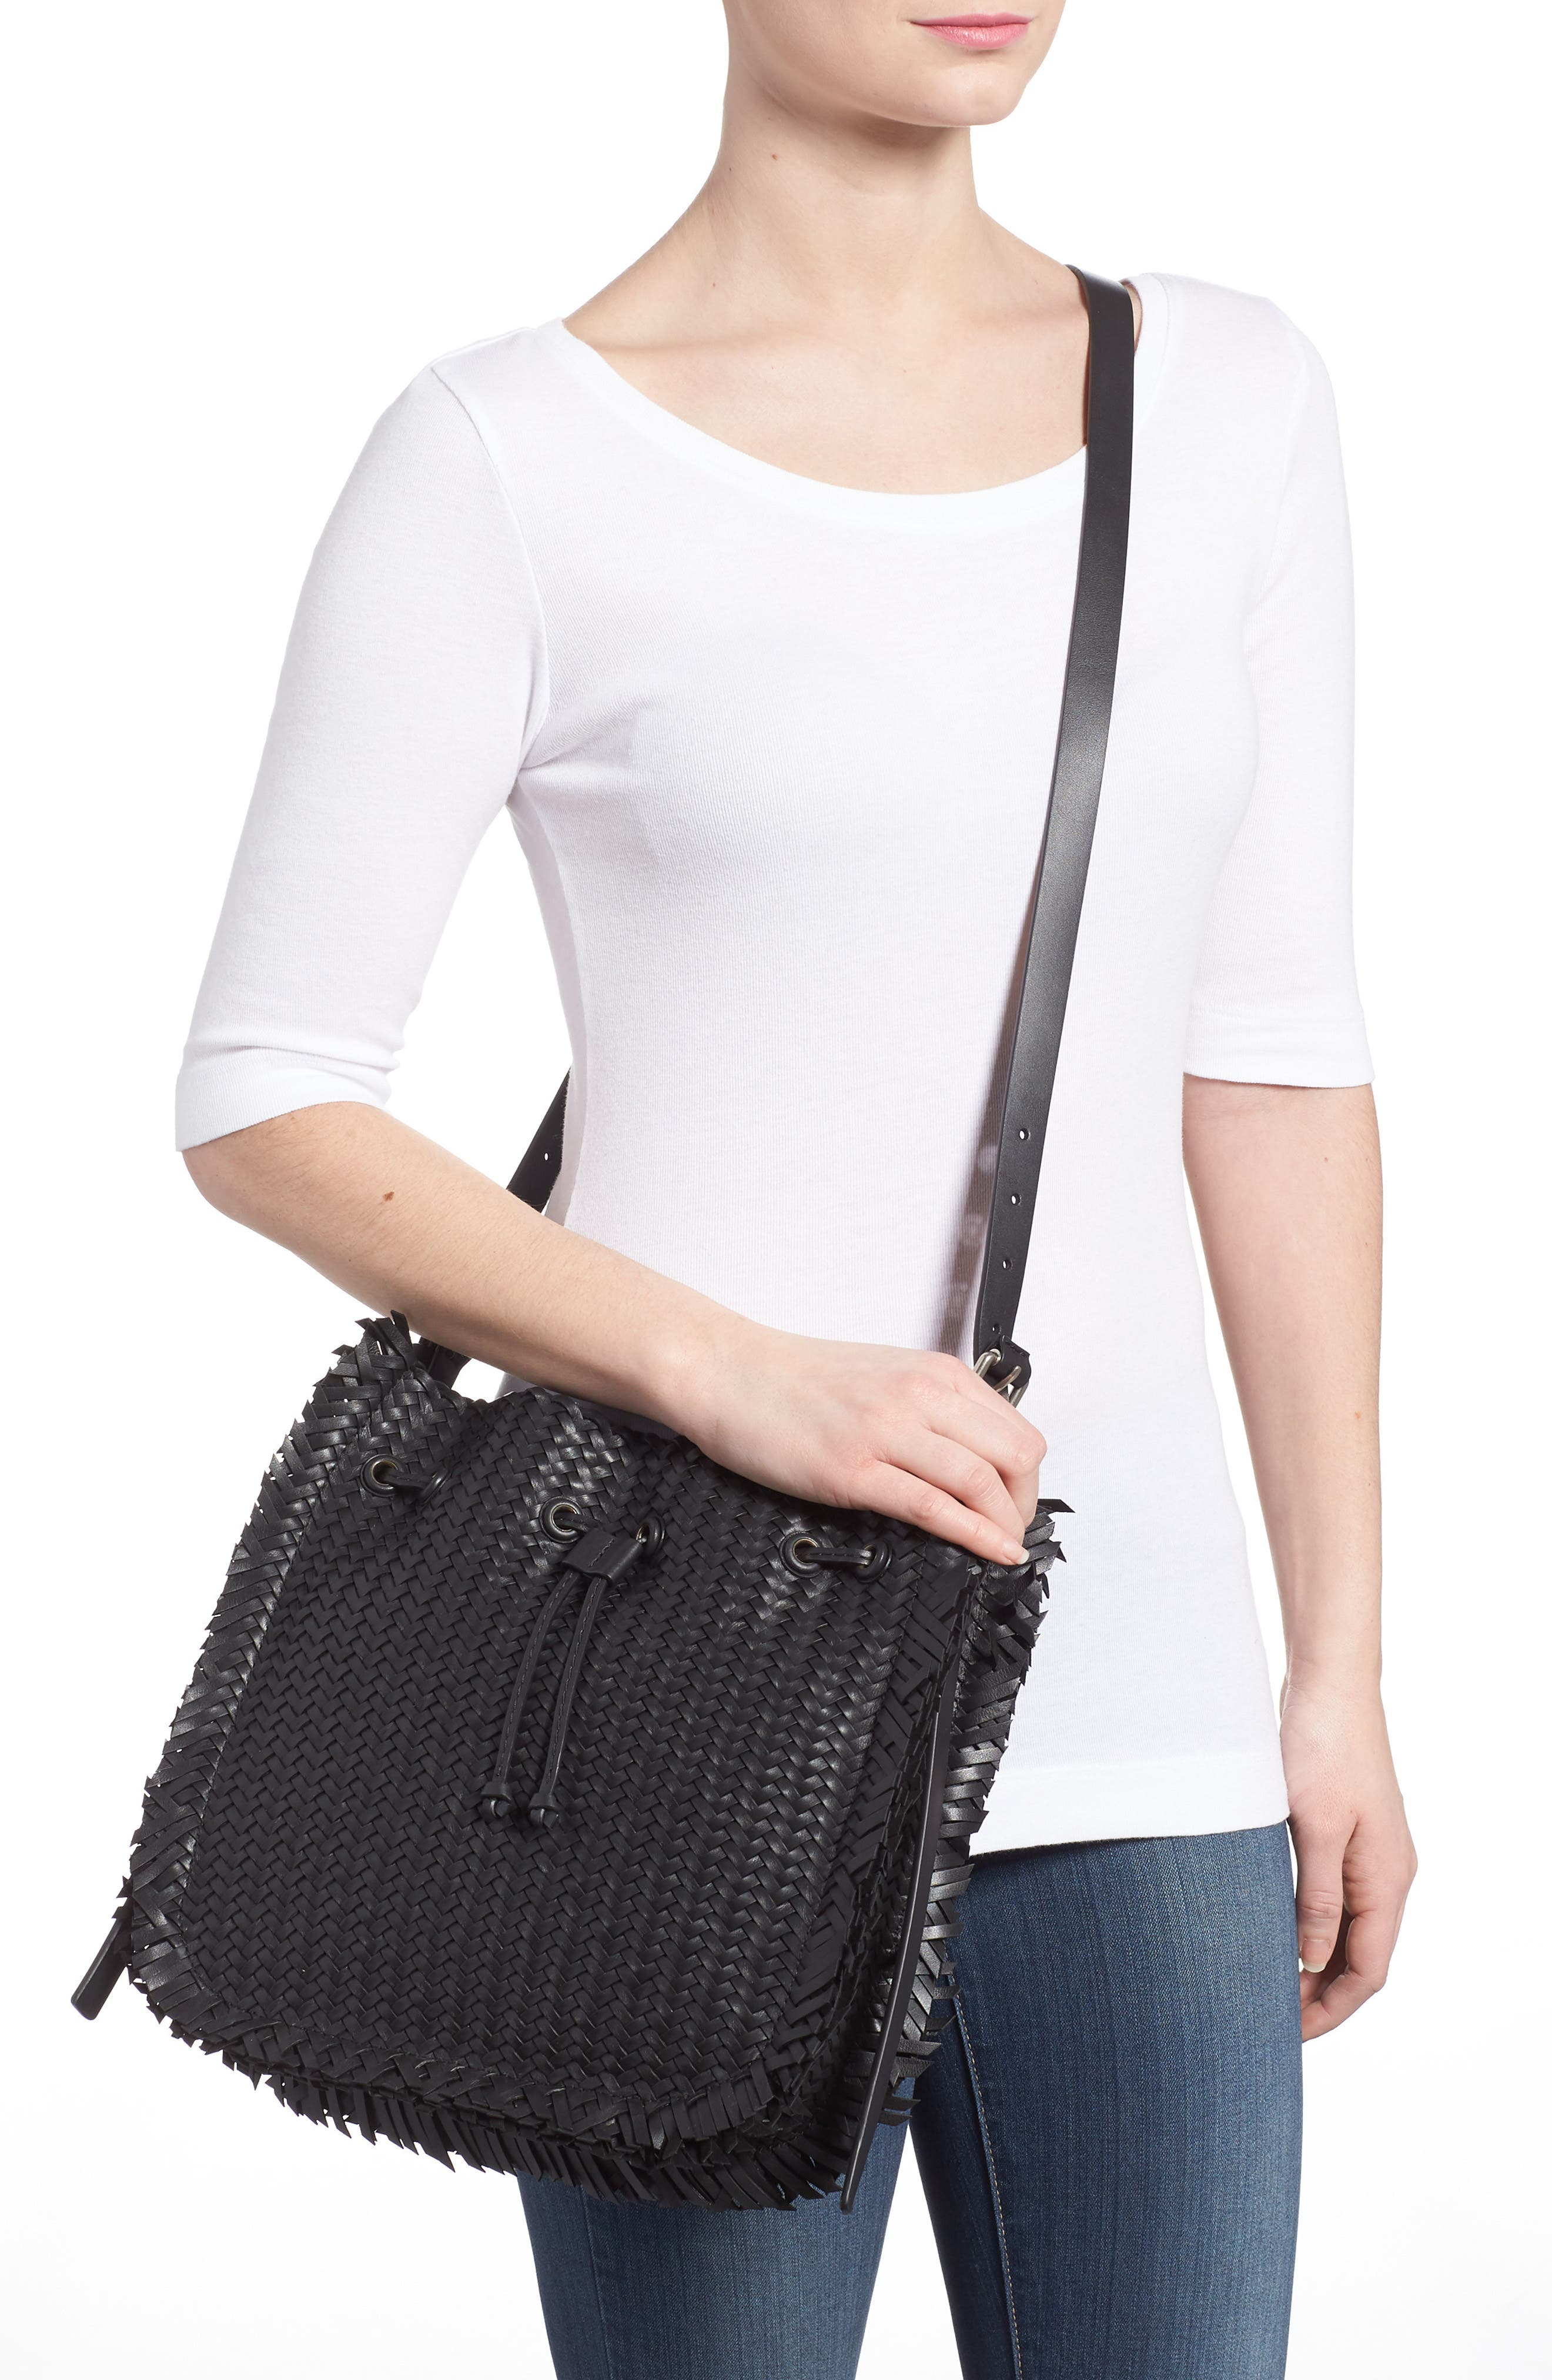 Maldives Woven Frayed Leather Tote,                             Alternate thumbnail 2, color,